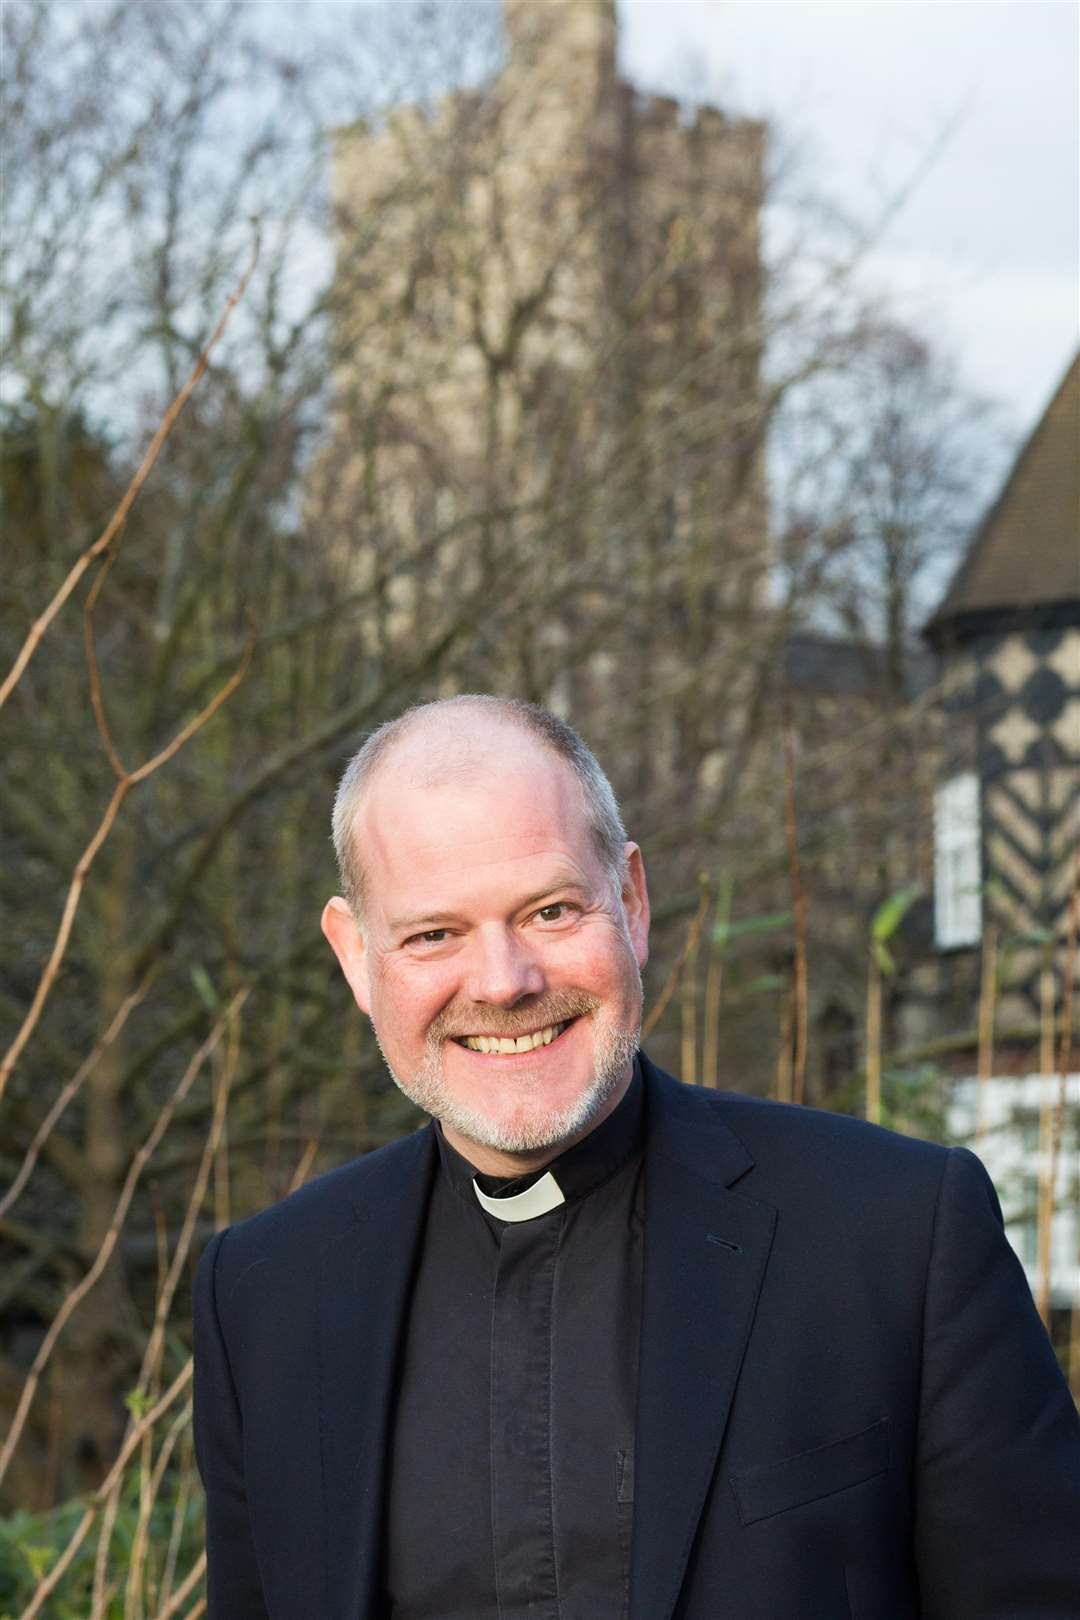 The Rev Canon Joe Hawes is the new Dean of St Edmundsbury (1970843)